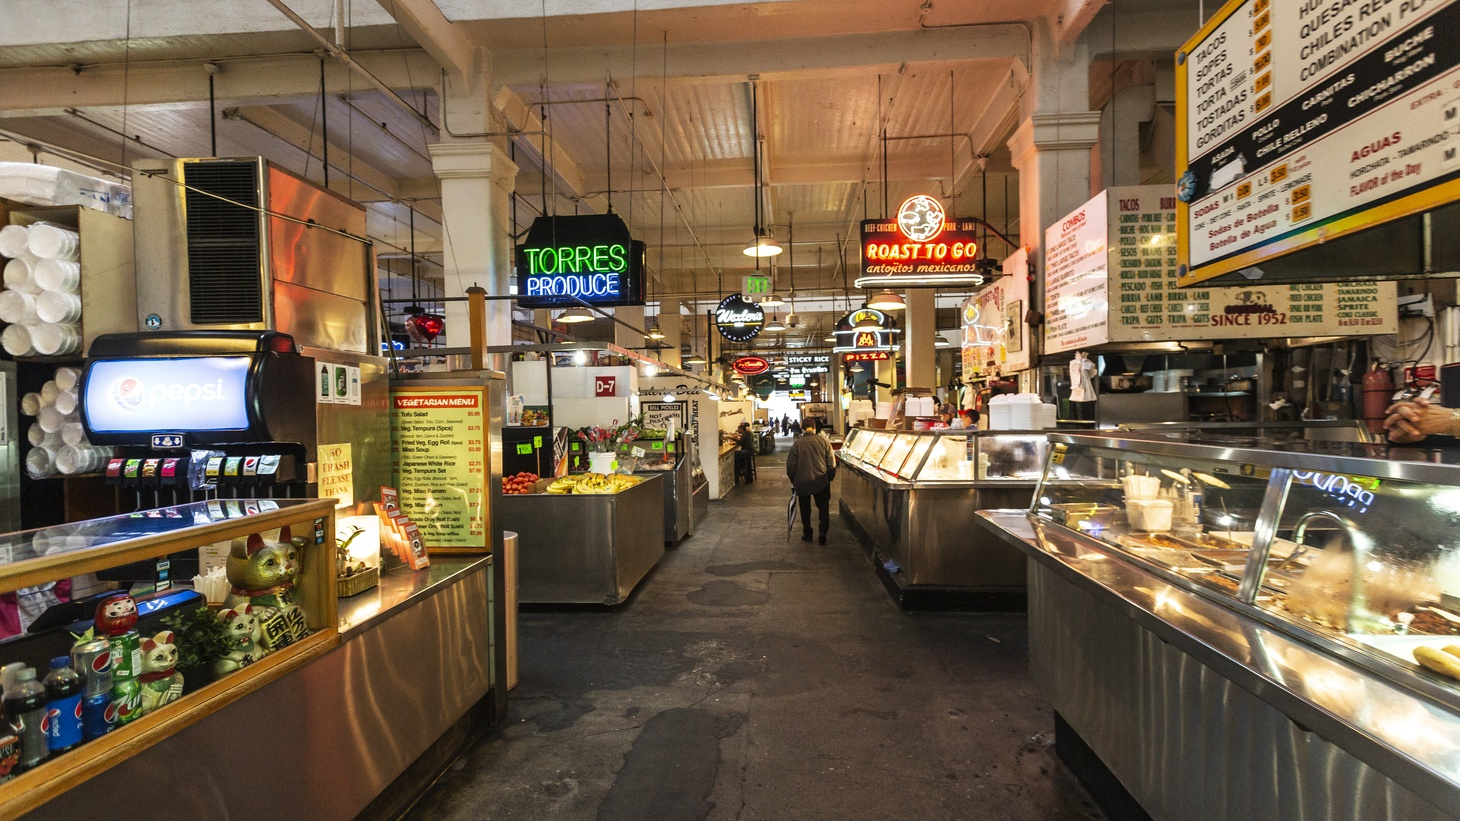 LA's Grand Central Market is mostly empty. Tourists and locals are avoiding the market due to coronavirus fears.